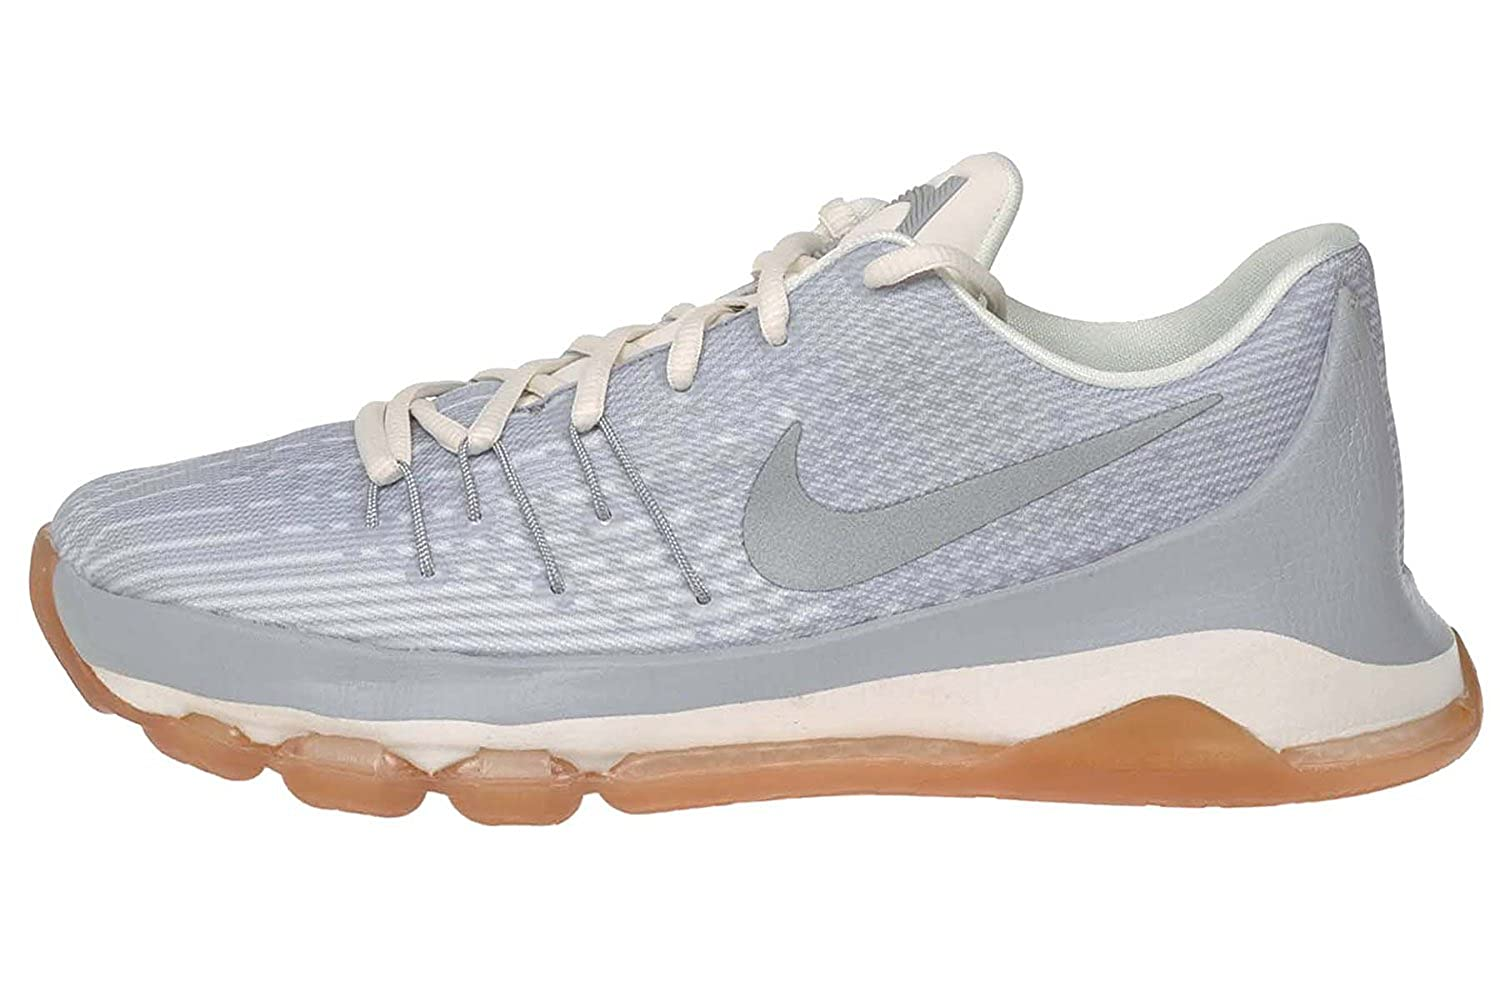 official photos 92481 342fd Nike Kids KD 8 GS, WOLF GREY/ METALLIC SILVER-WHITE, Youth Size 7